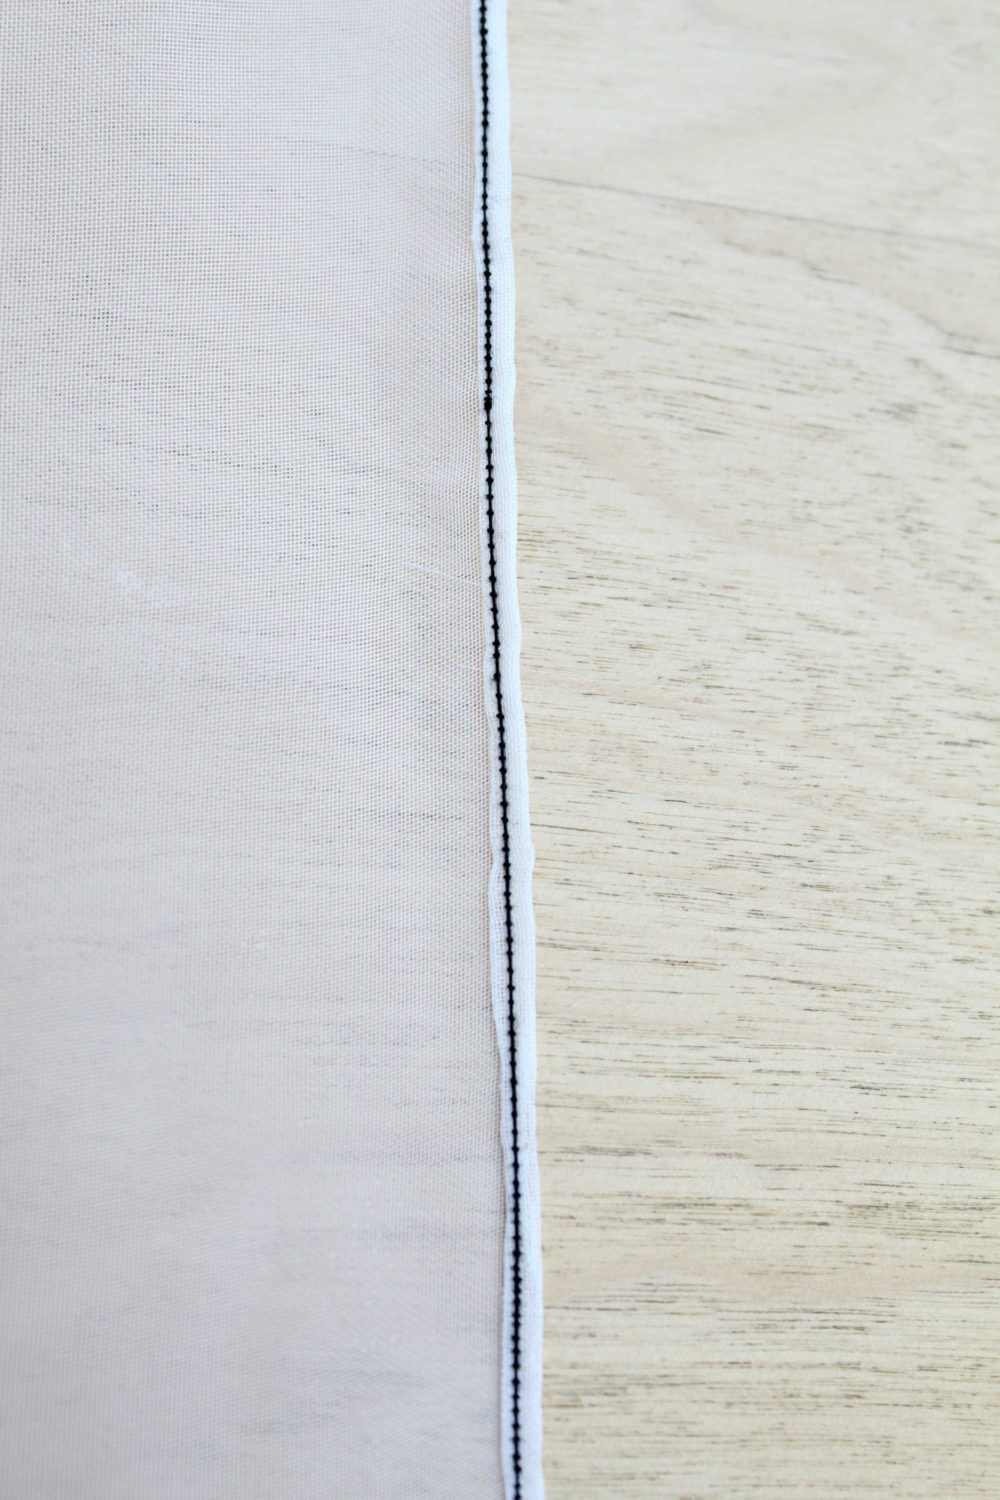 sewing a rolled hem